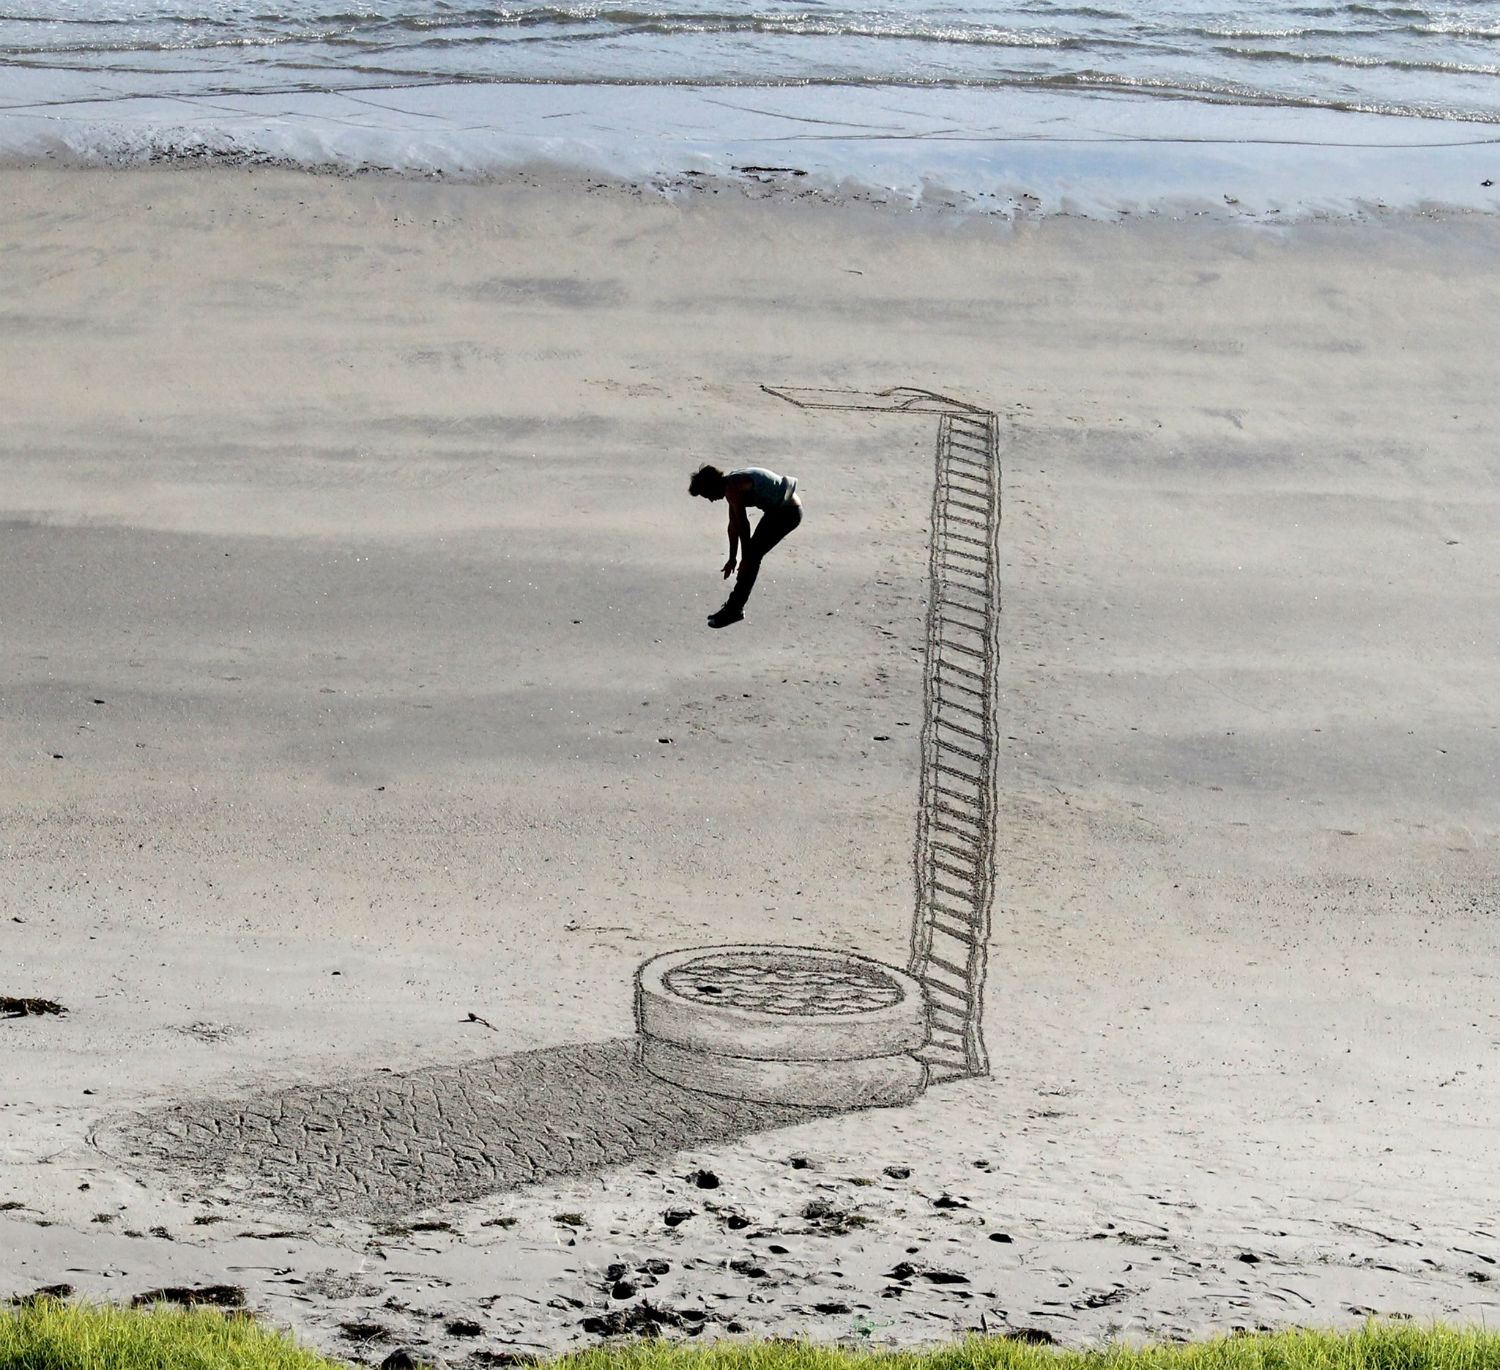 jamie harkins 3d beach art